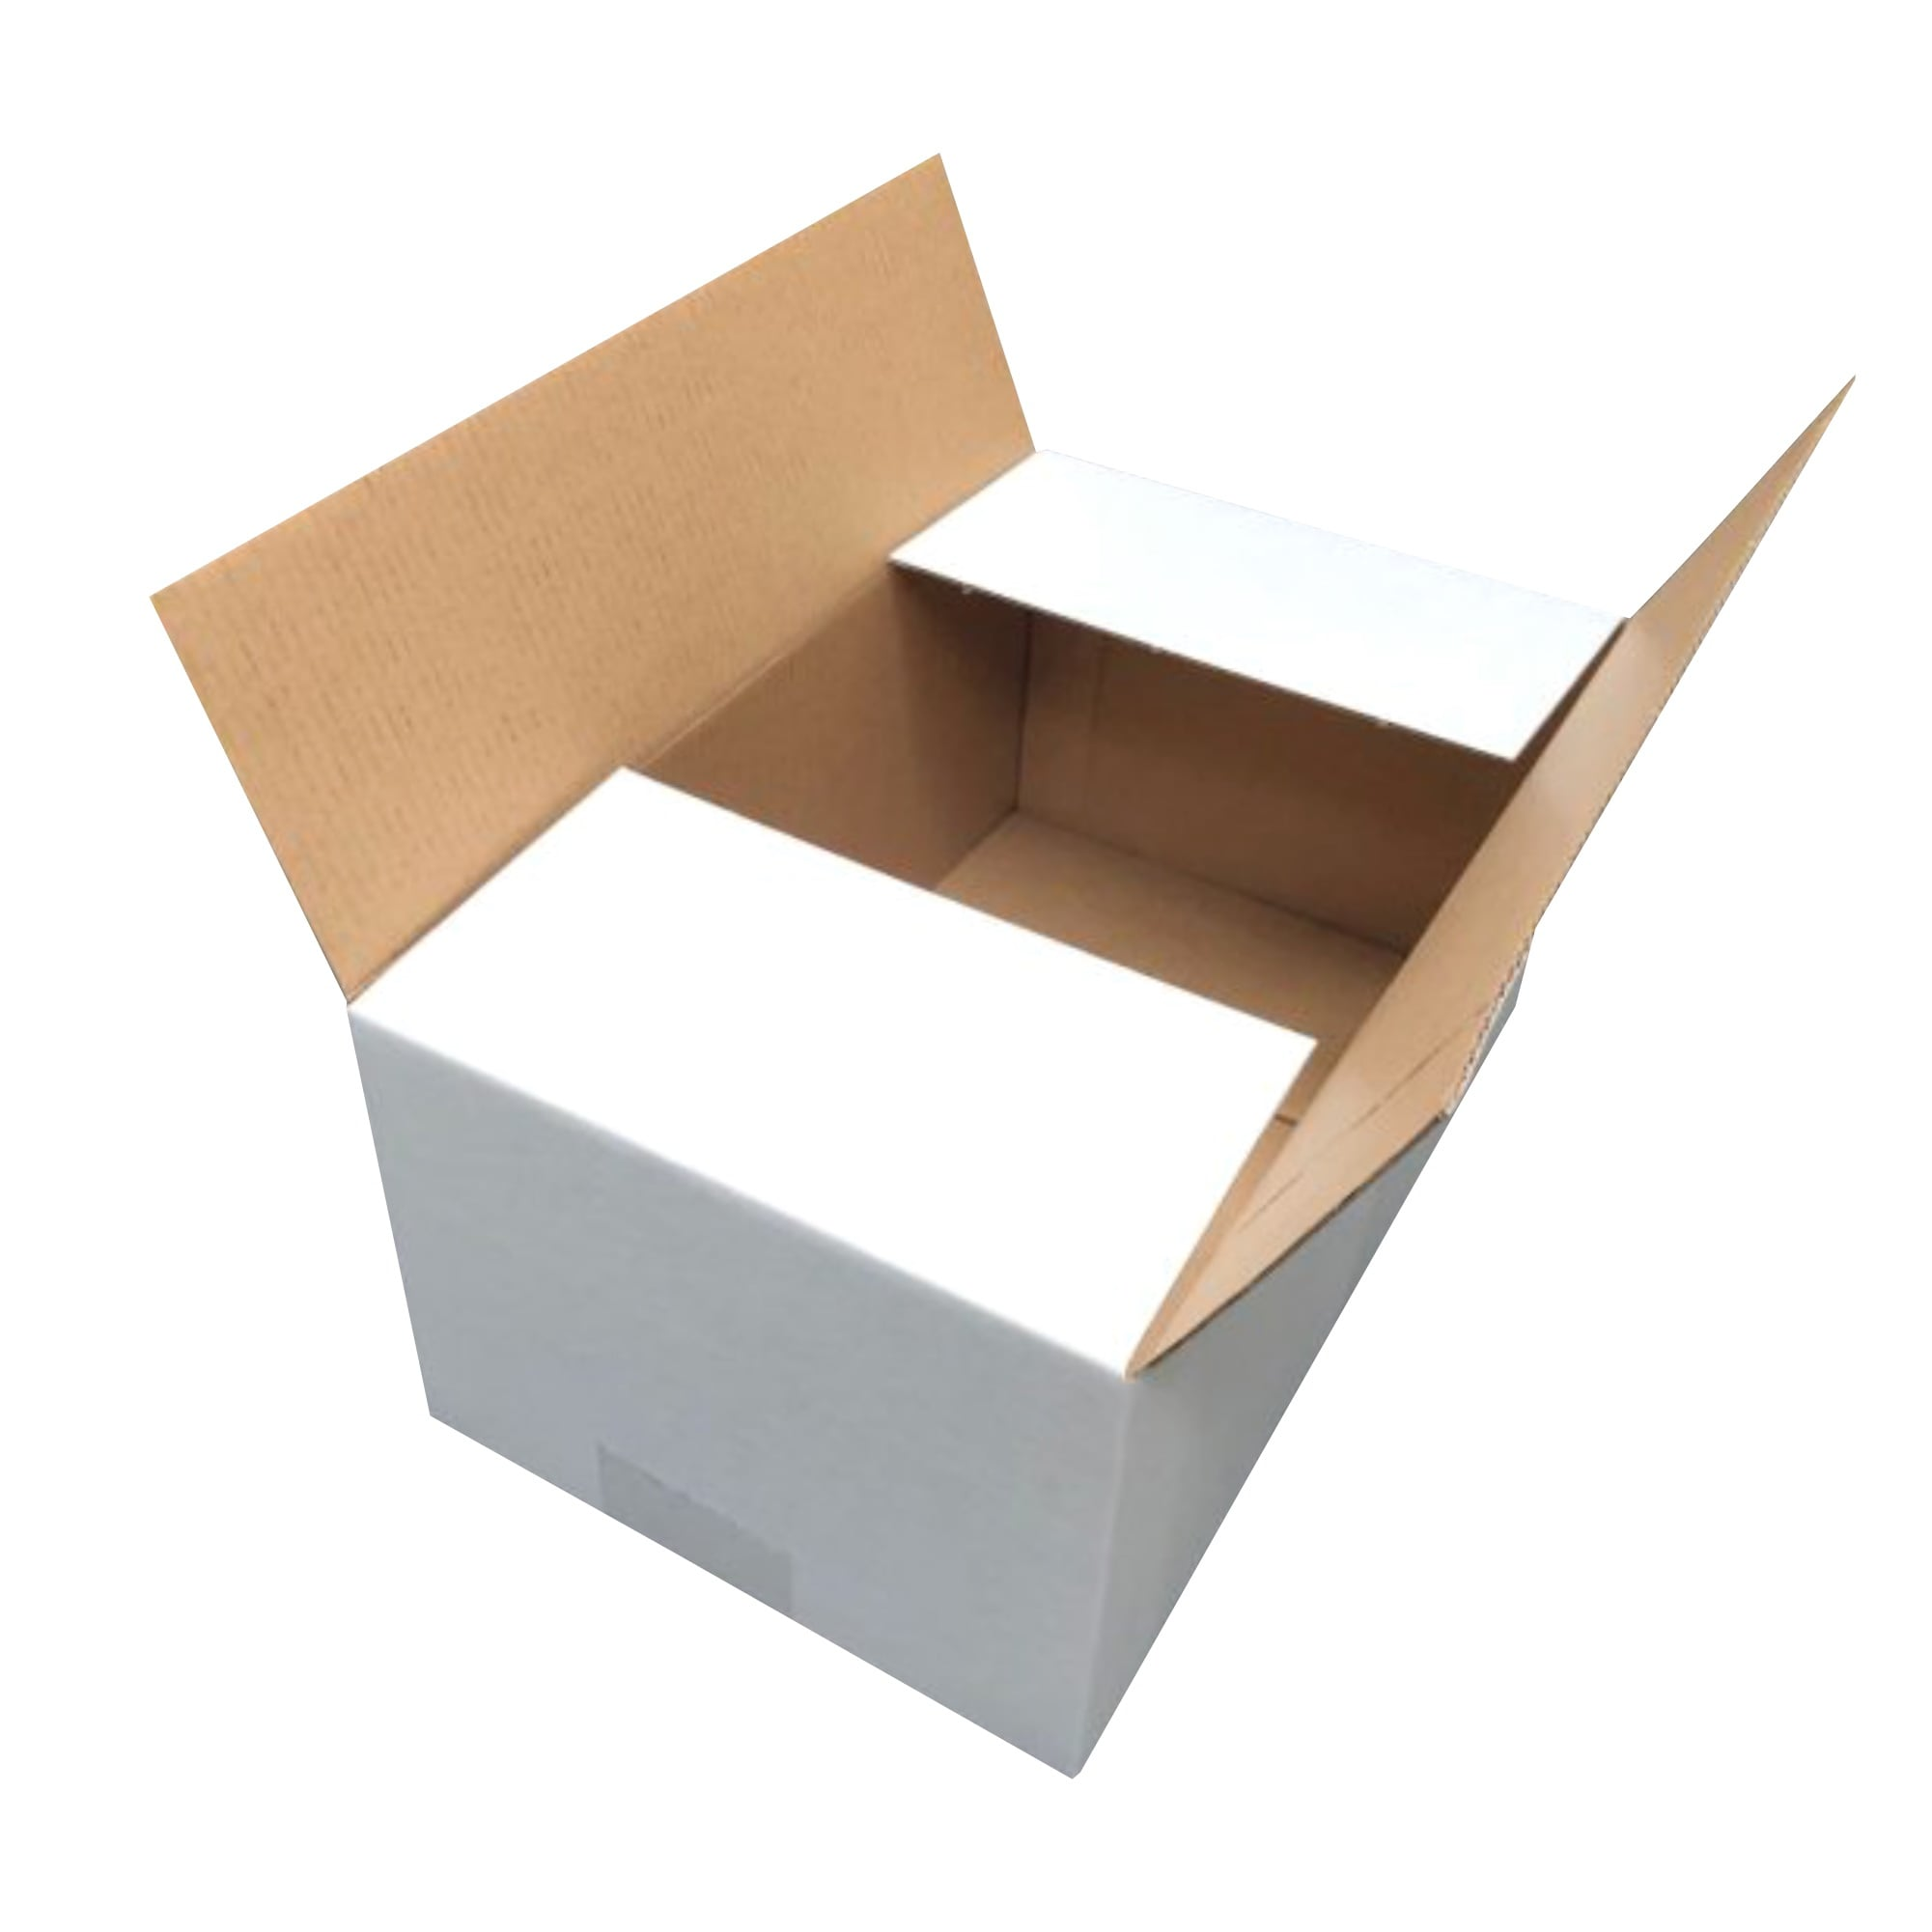 100pcs Regular Slotted 270 x 160 x 120mm Mailing Box